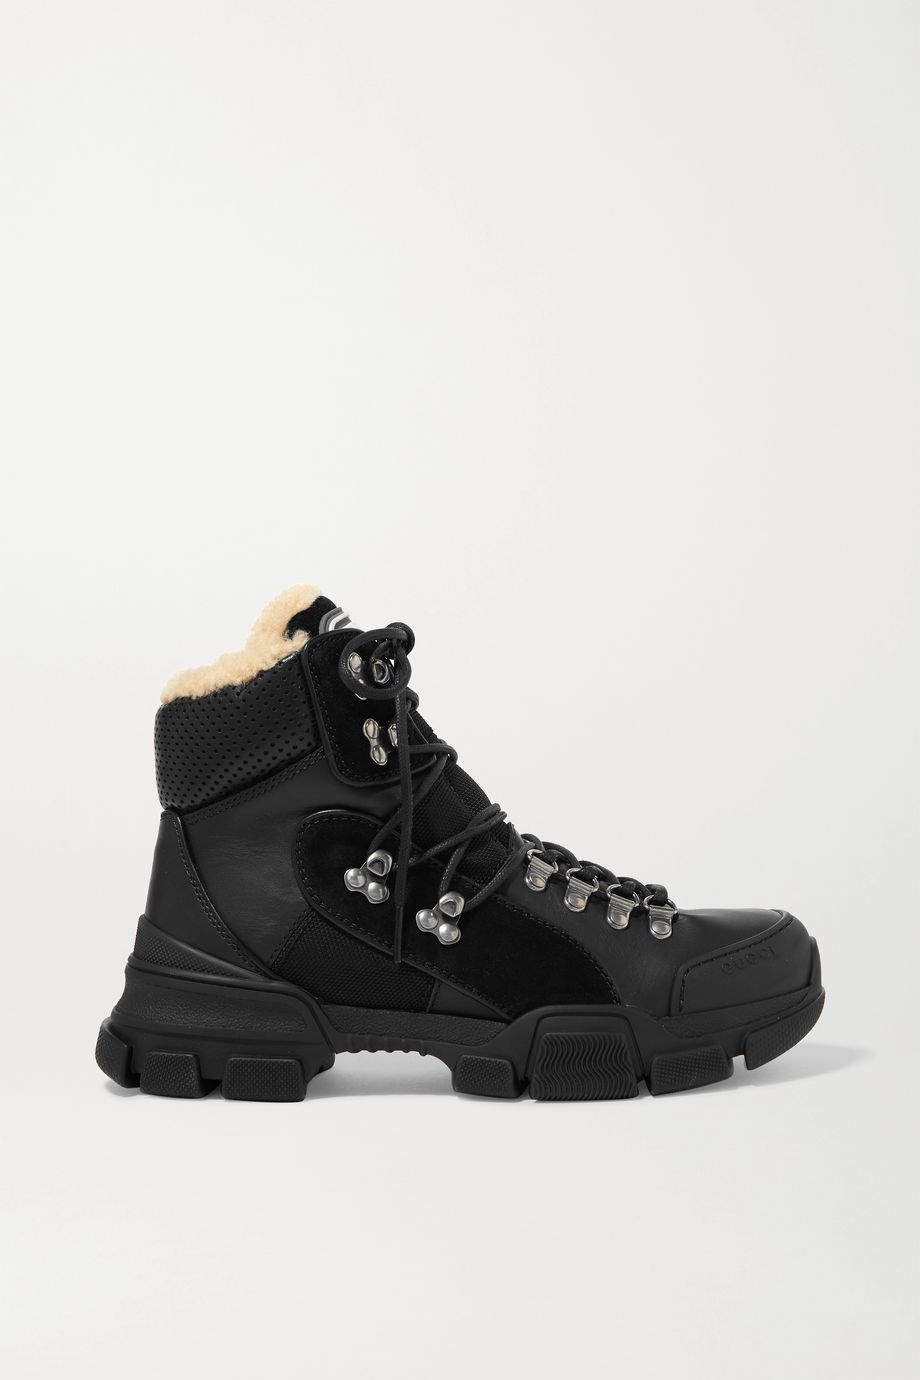 Gucci Flashtrek shearling-trimmed leather, canvas and suede boots